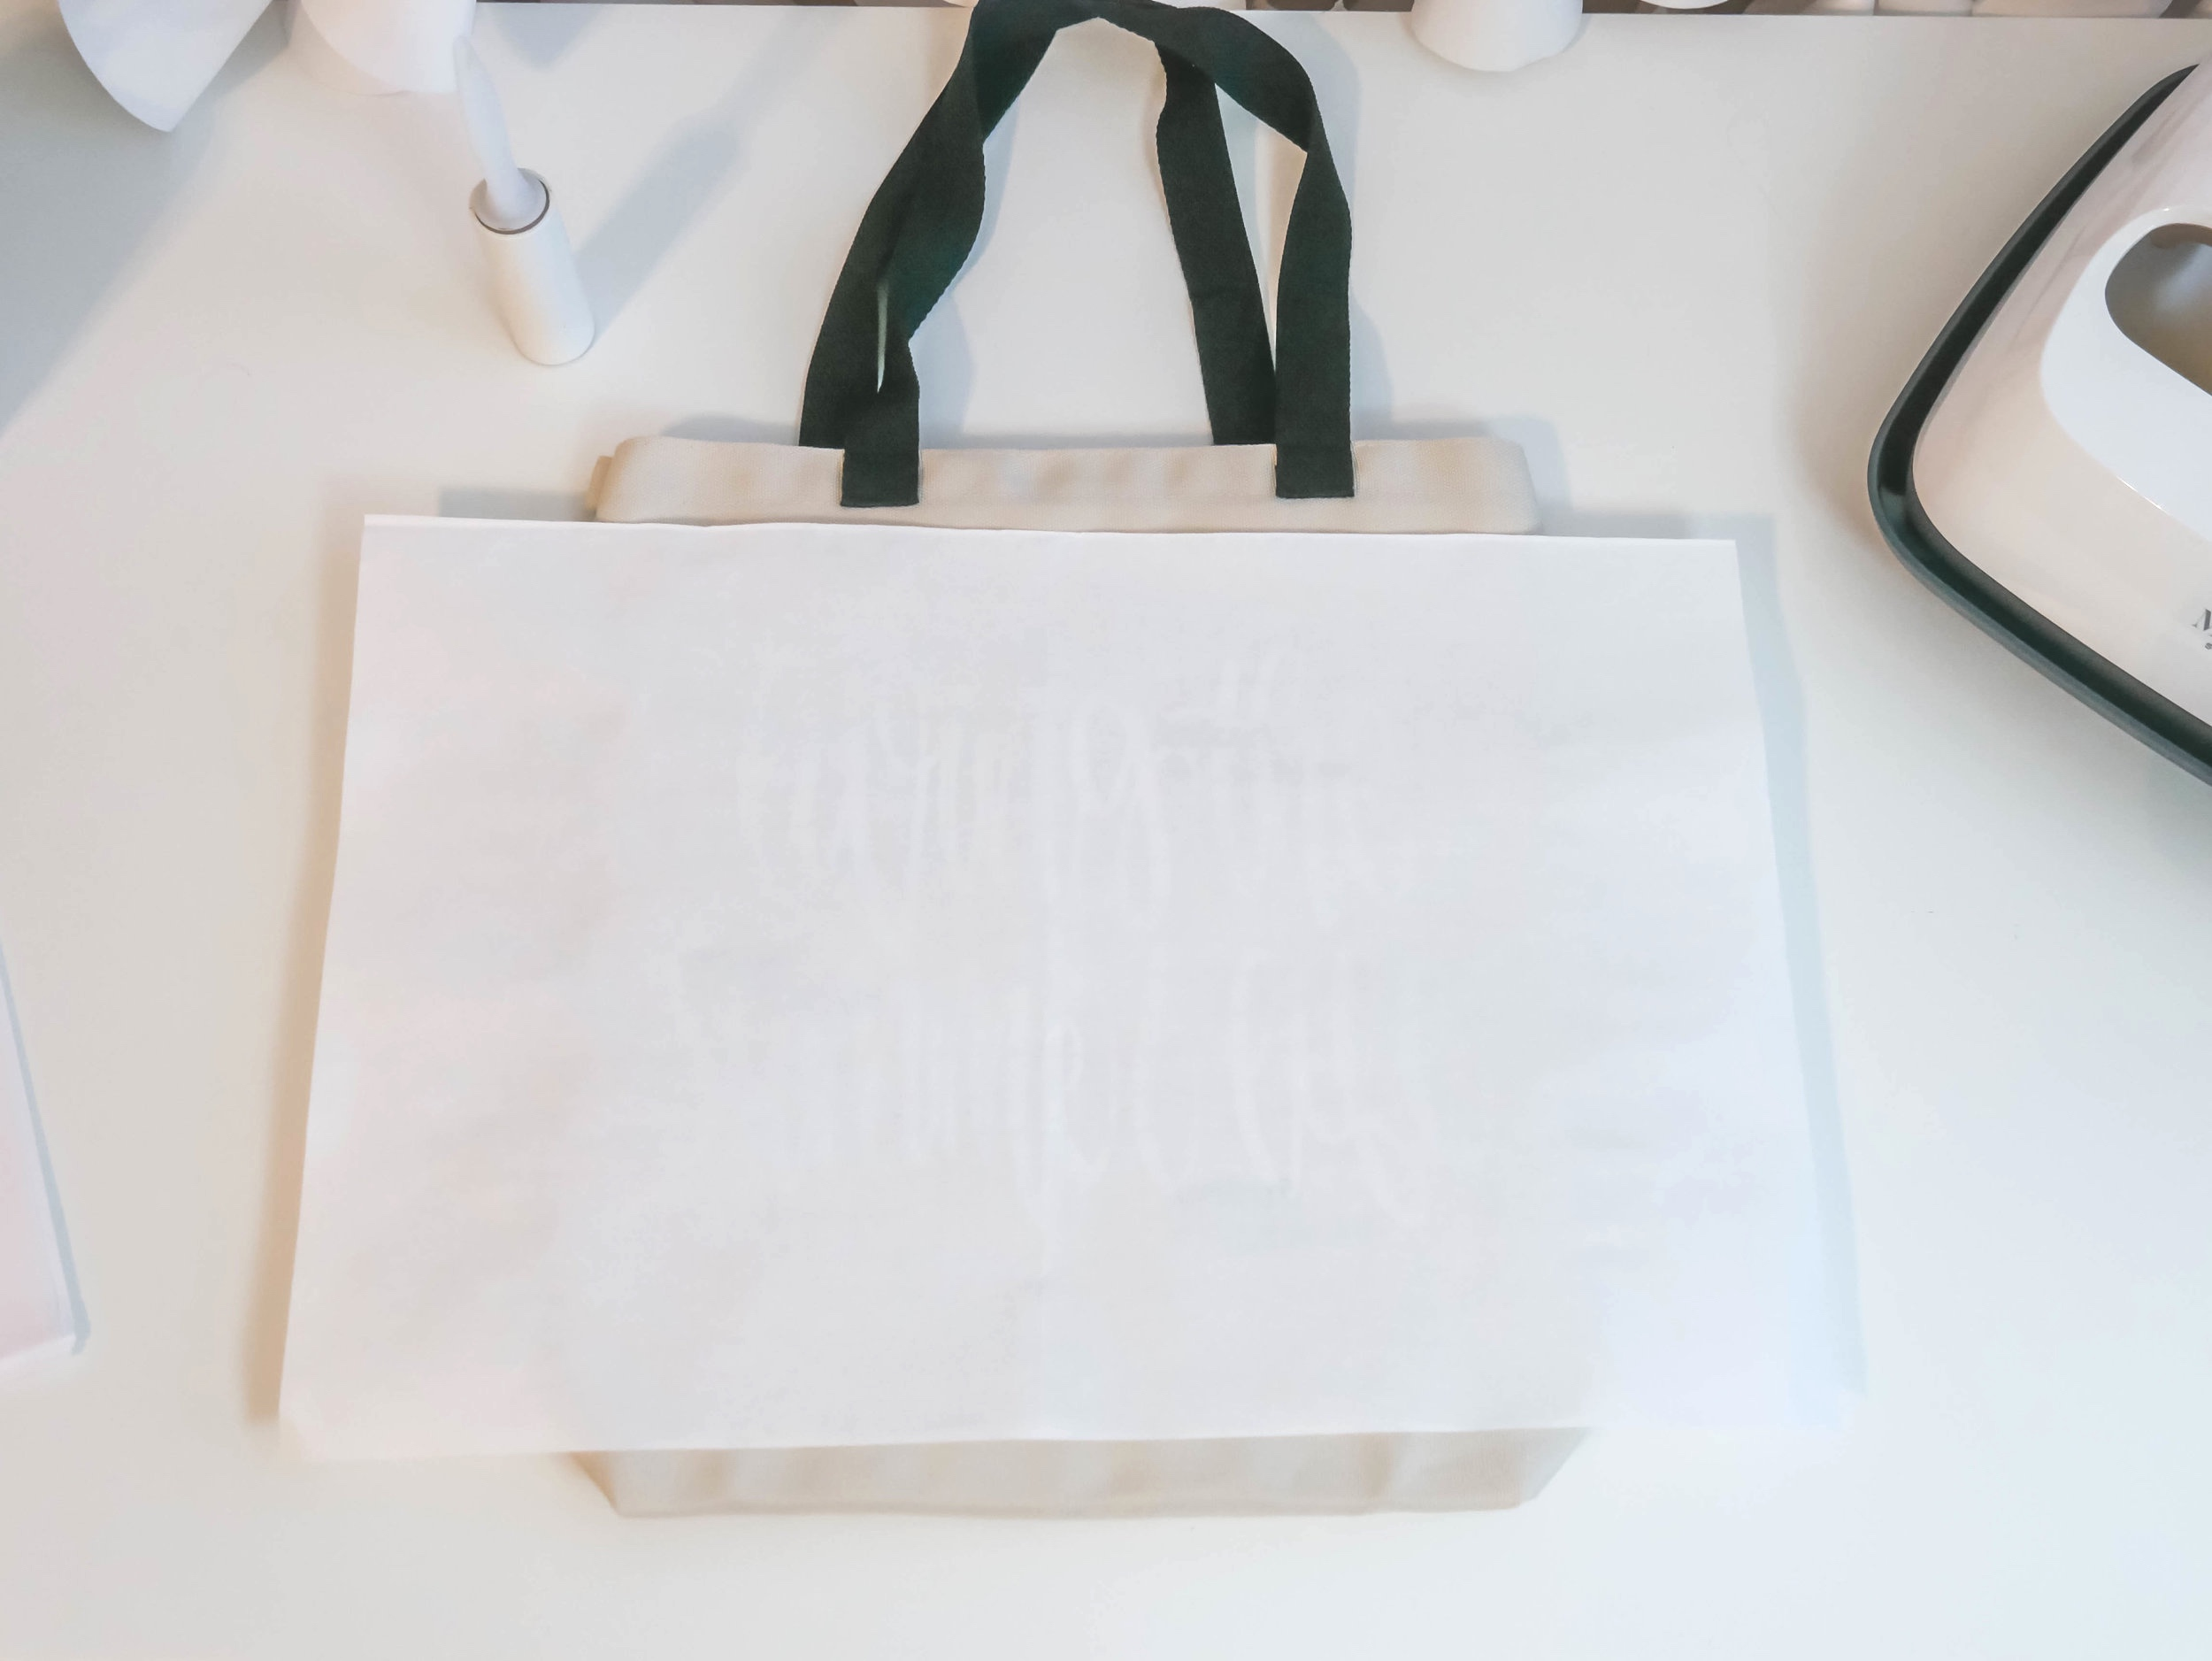 How to use Cricut's Infusible Ink available at Michaels : Ideas from Mint Event Design, Cricut DIY, Cricut Infusible Ink DIY and How to, step by step infusible Ink DIY